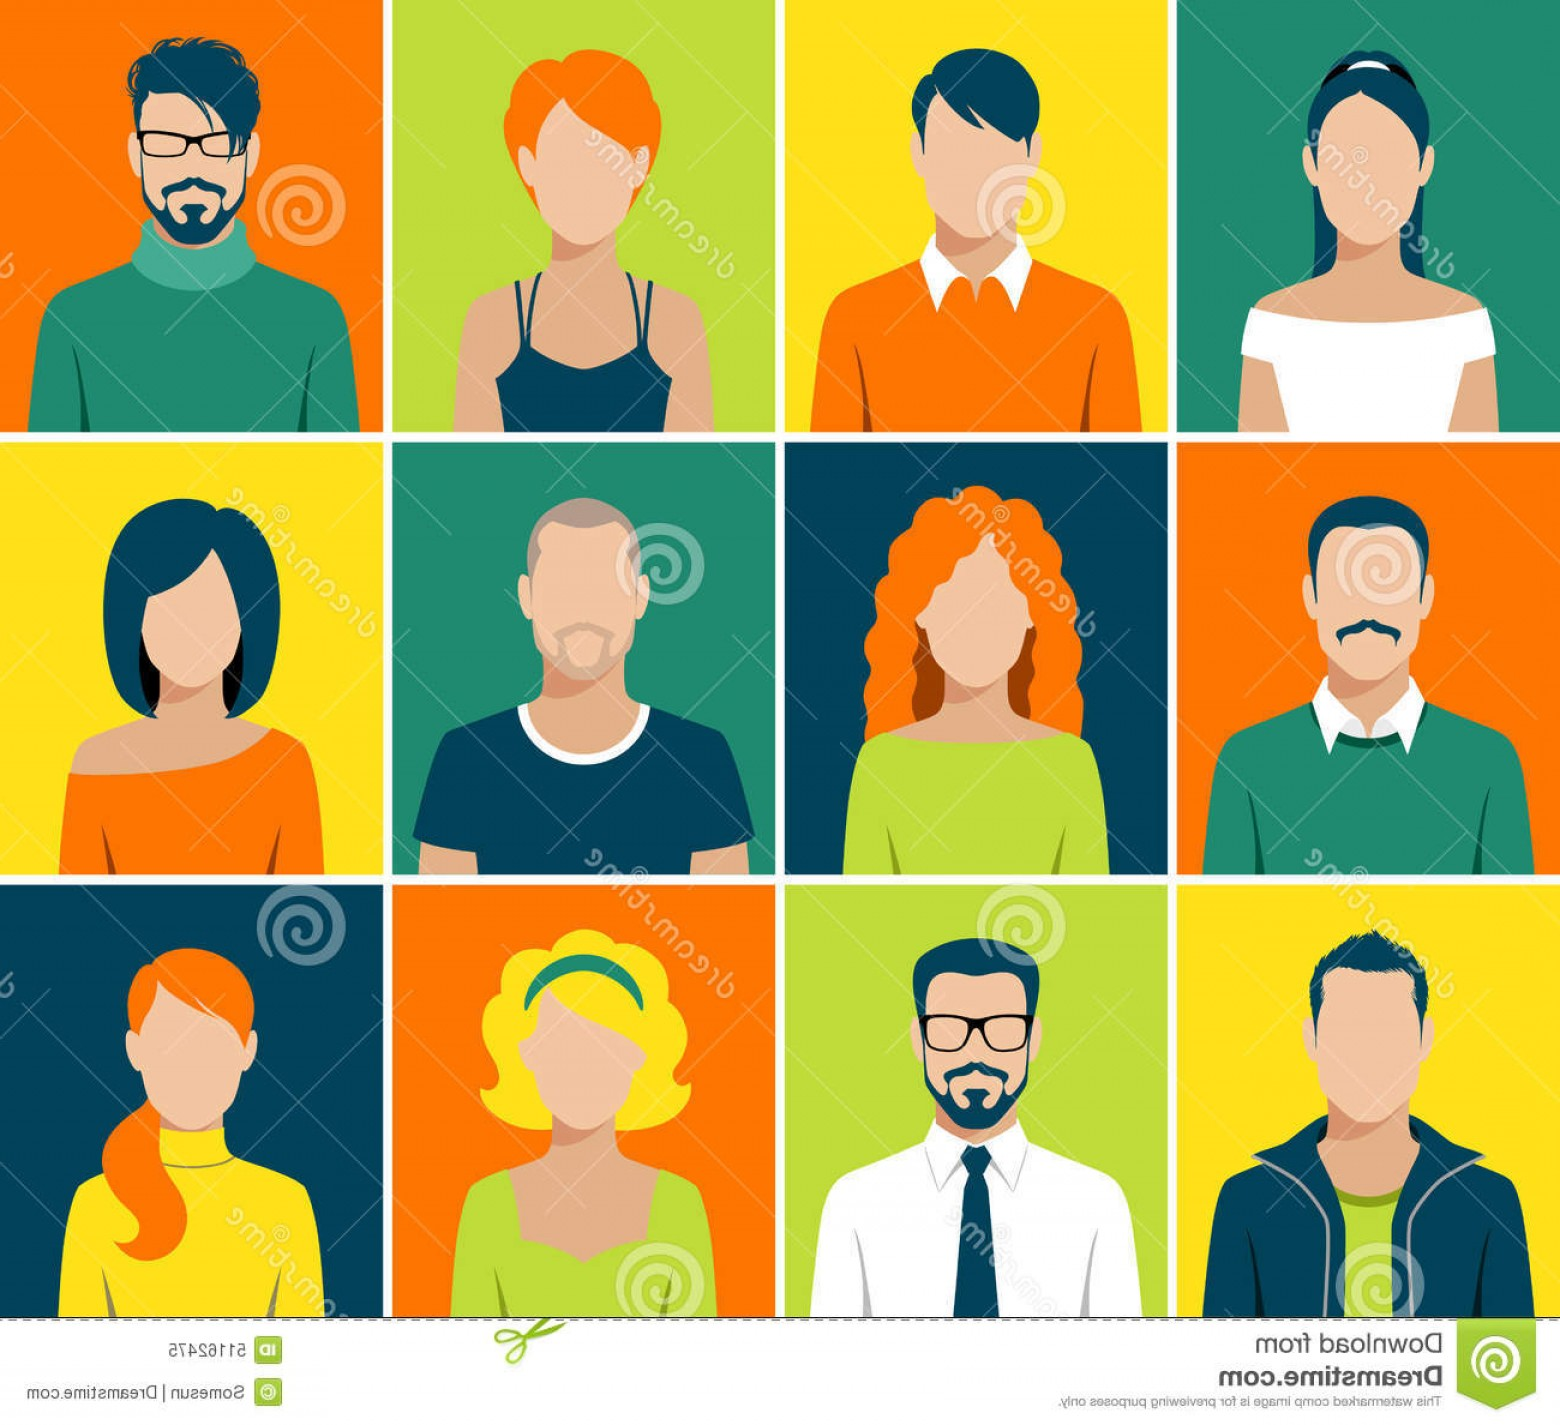 Vector People Man: Stock Illustration Flat Avatar App Icons Set User Face People Vector Design Man Woman Image